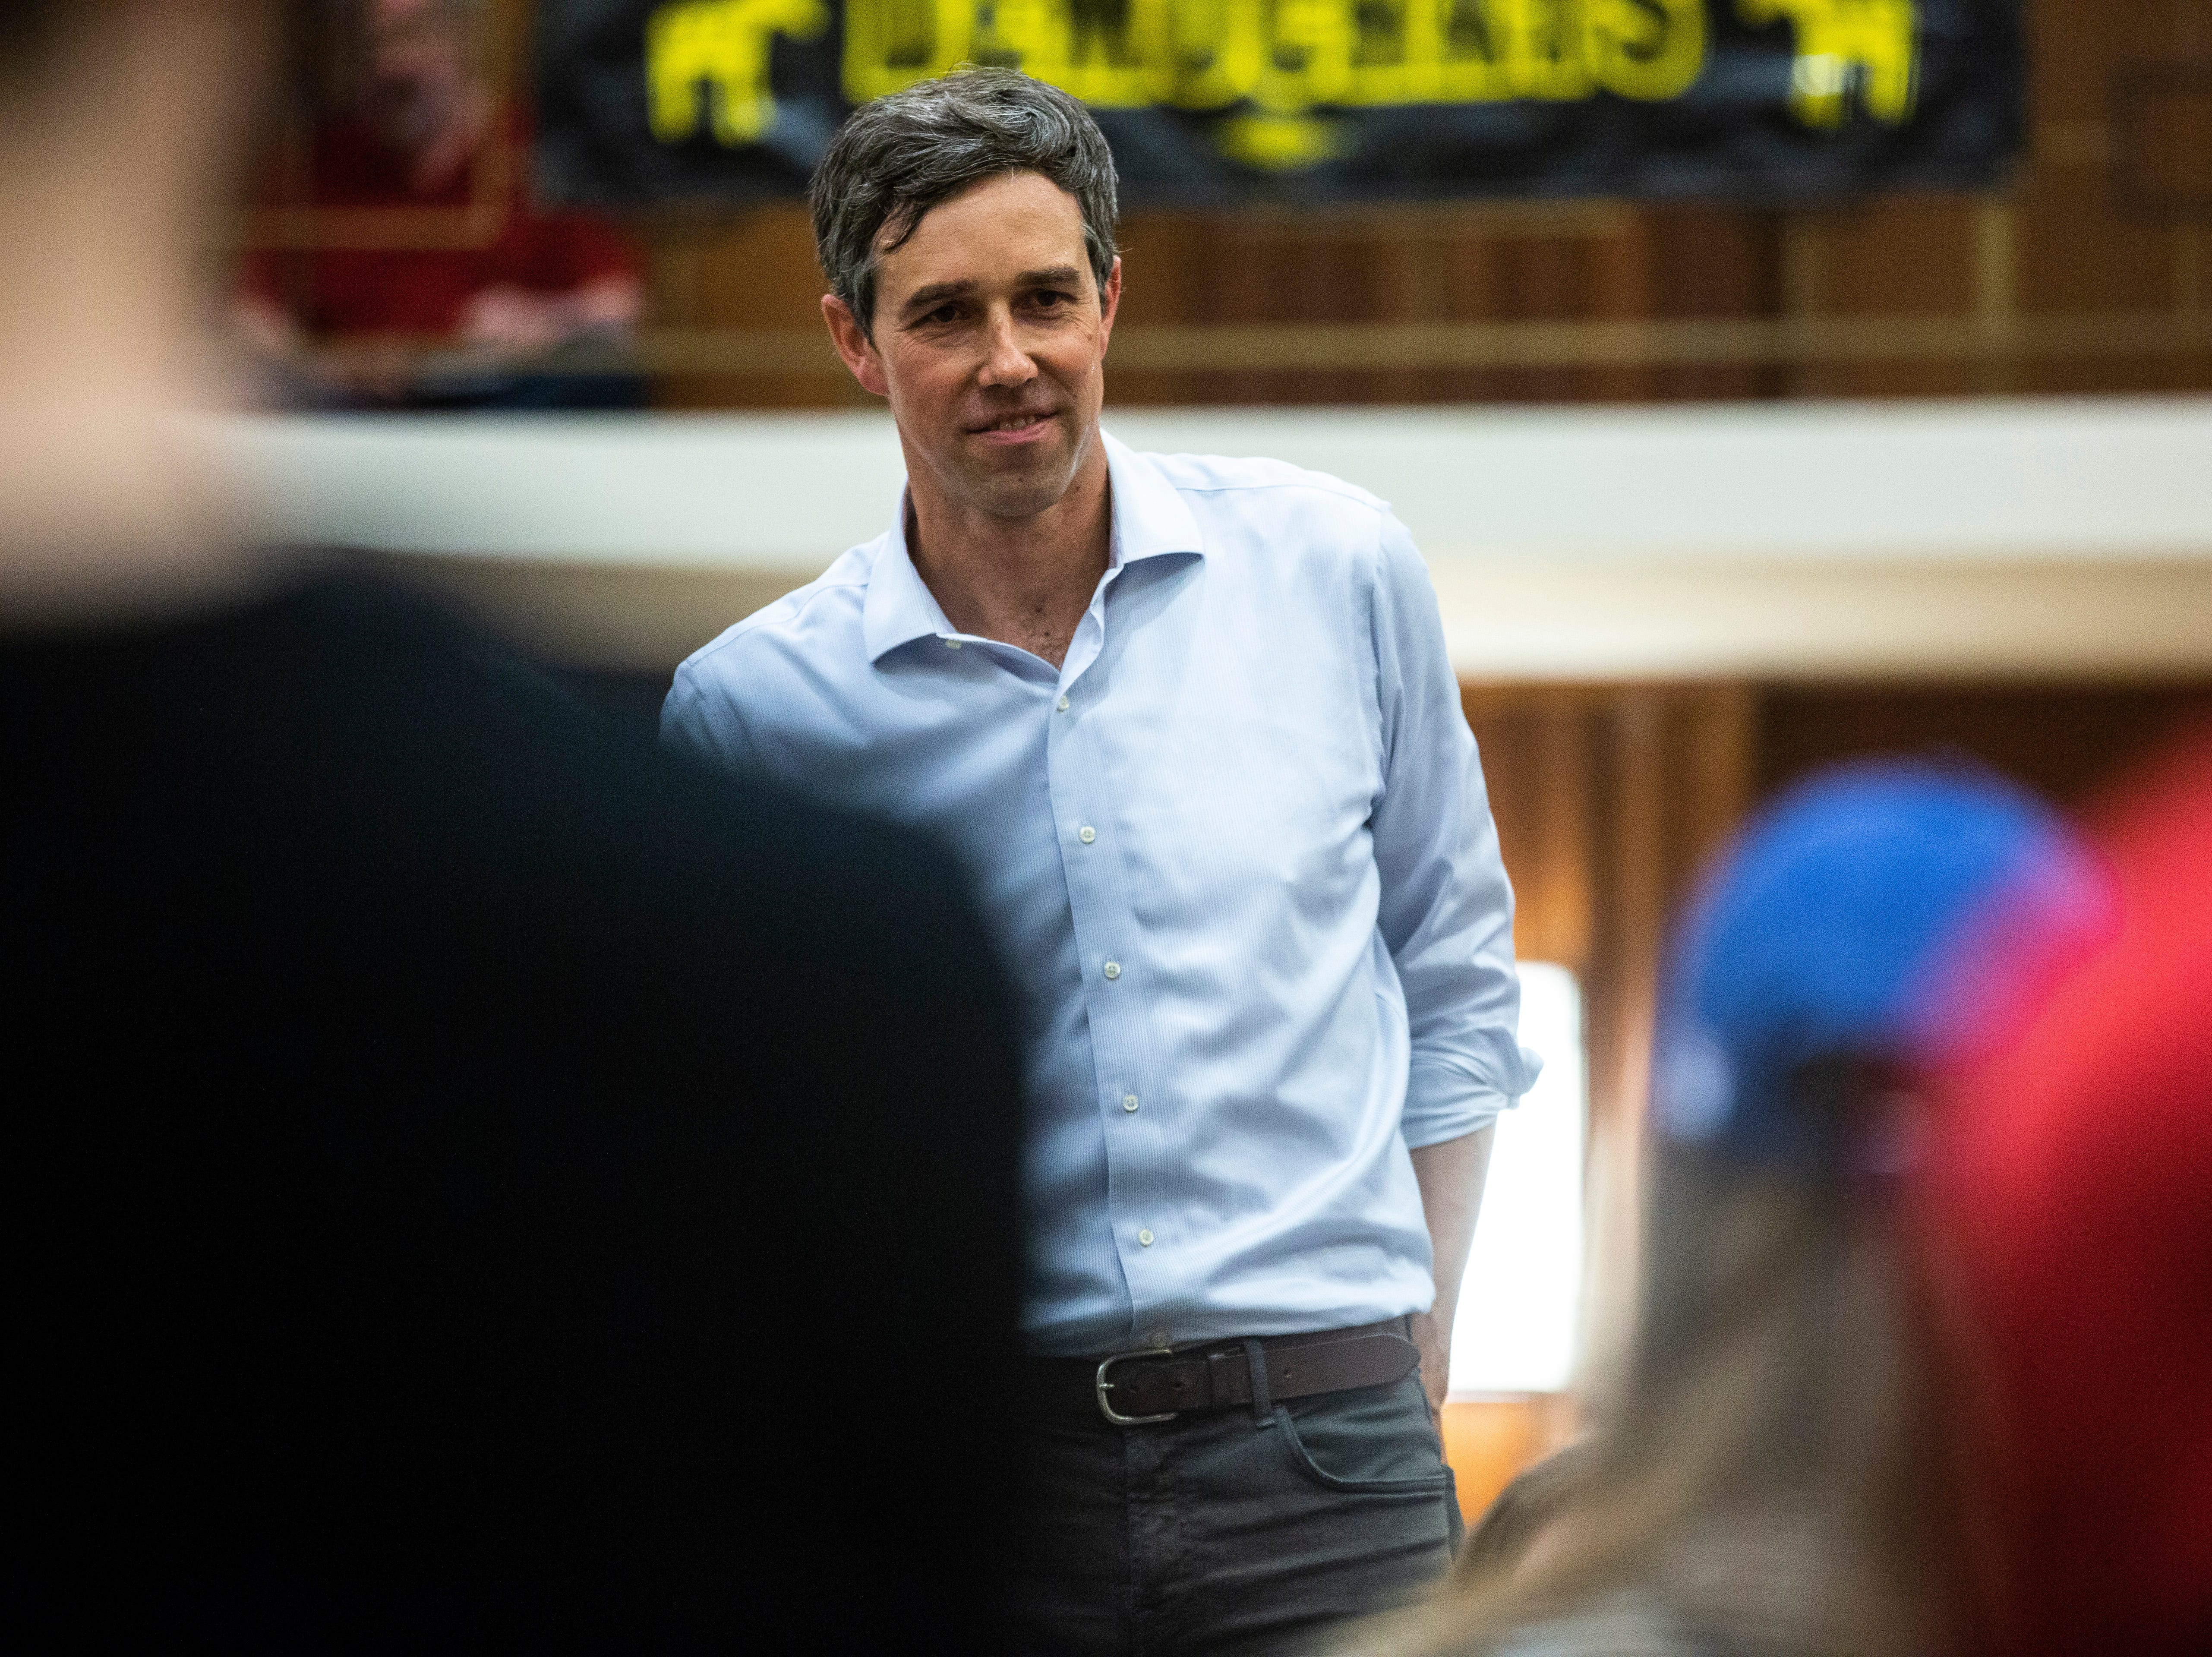 Democratic presidential candidate Beto O'Rourke of El Paso, Texas, listens to a question from the crowd during a town hall event on Sunday, April 7, 2019, in the second floor ballroom at the Iowa Memorial Union on the University of Iowa campus in Iowa City, Iowa.